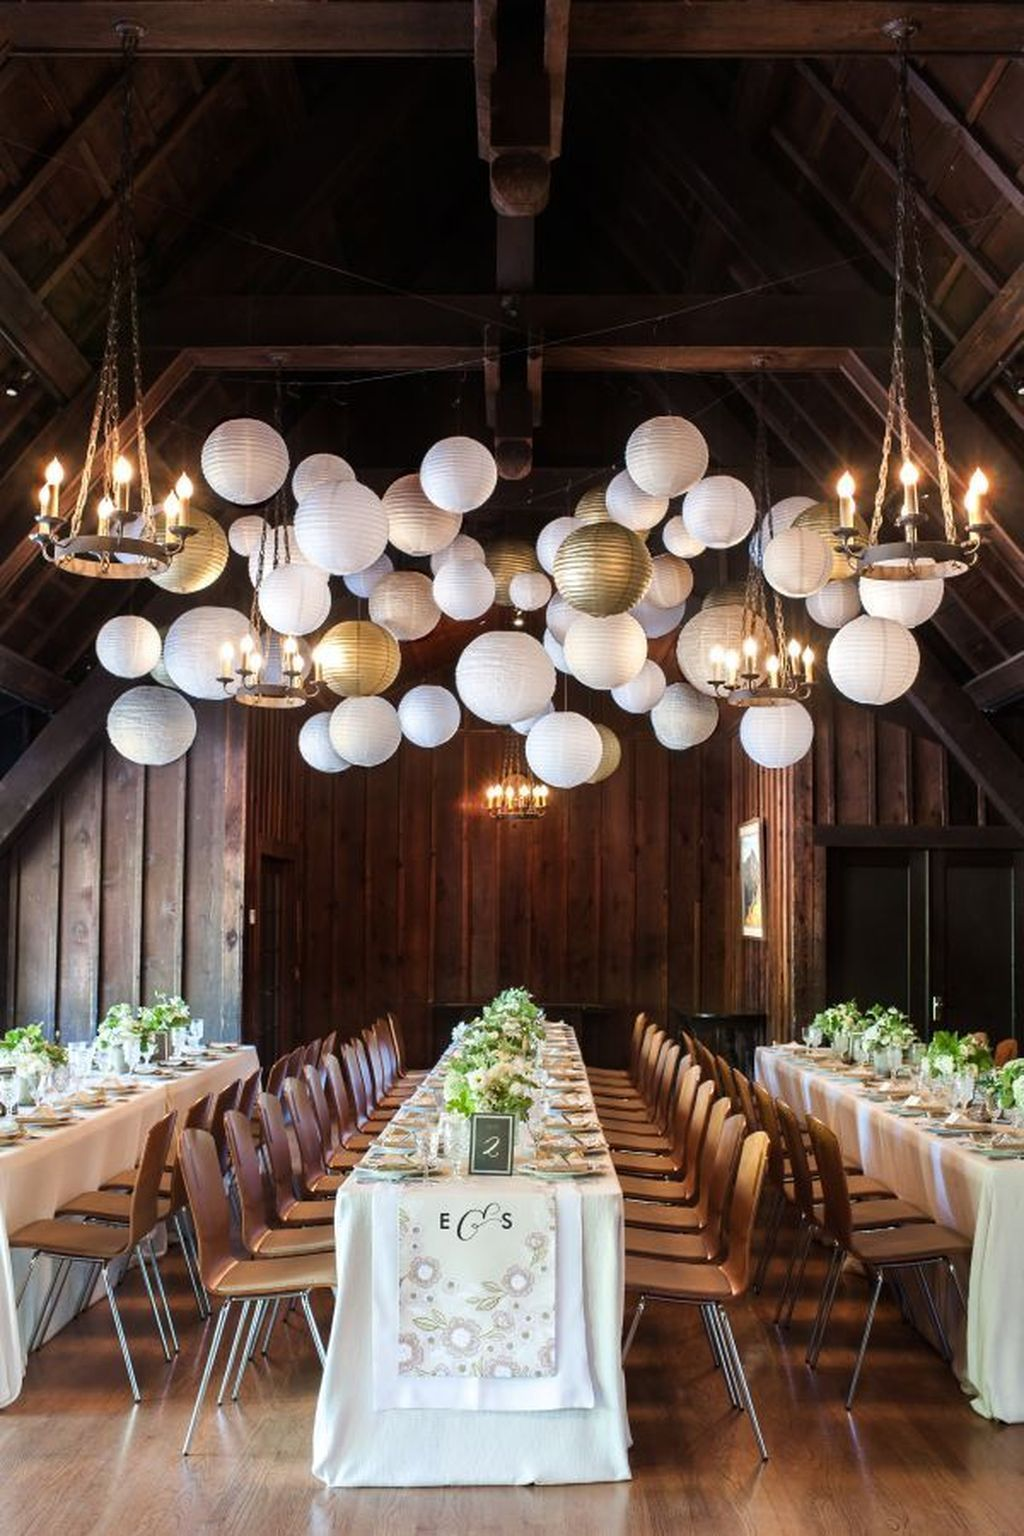 86 Cheap And Inspiring Rustic Wedding Decorations Ideas On A Budget